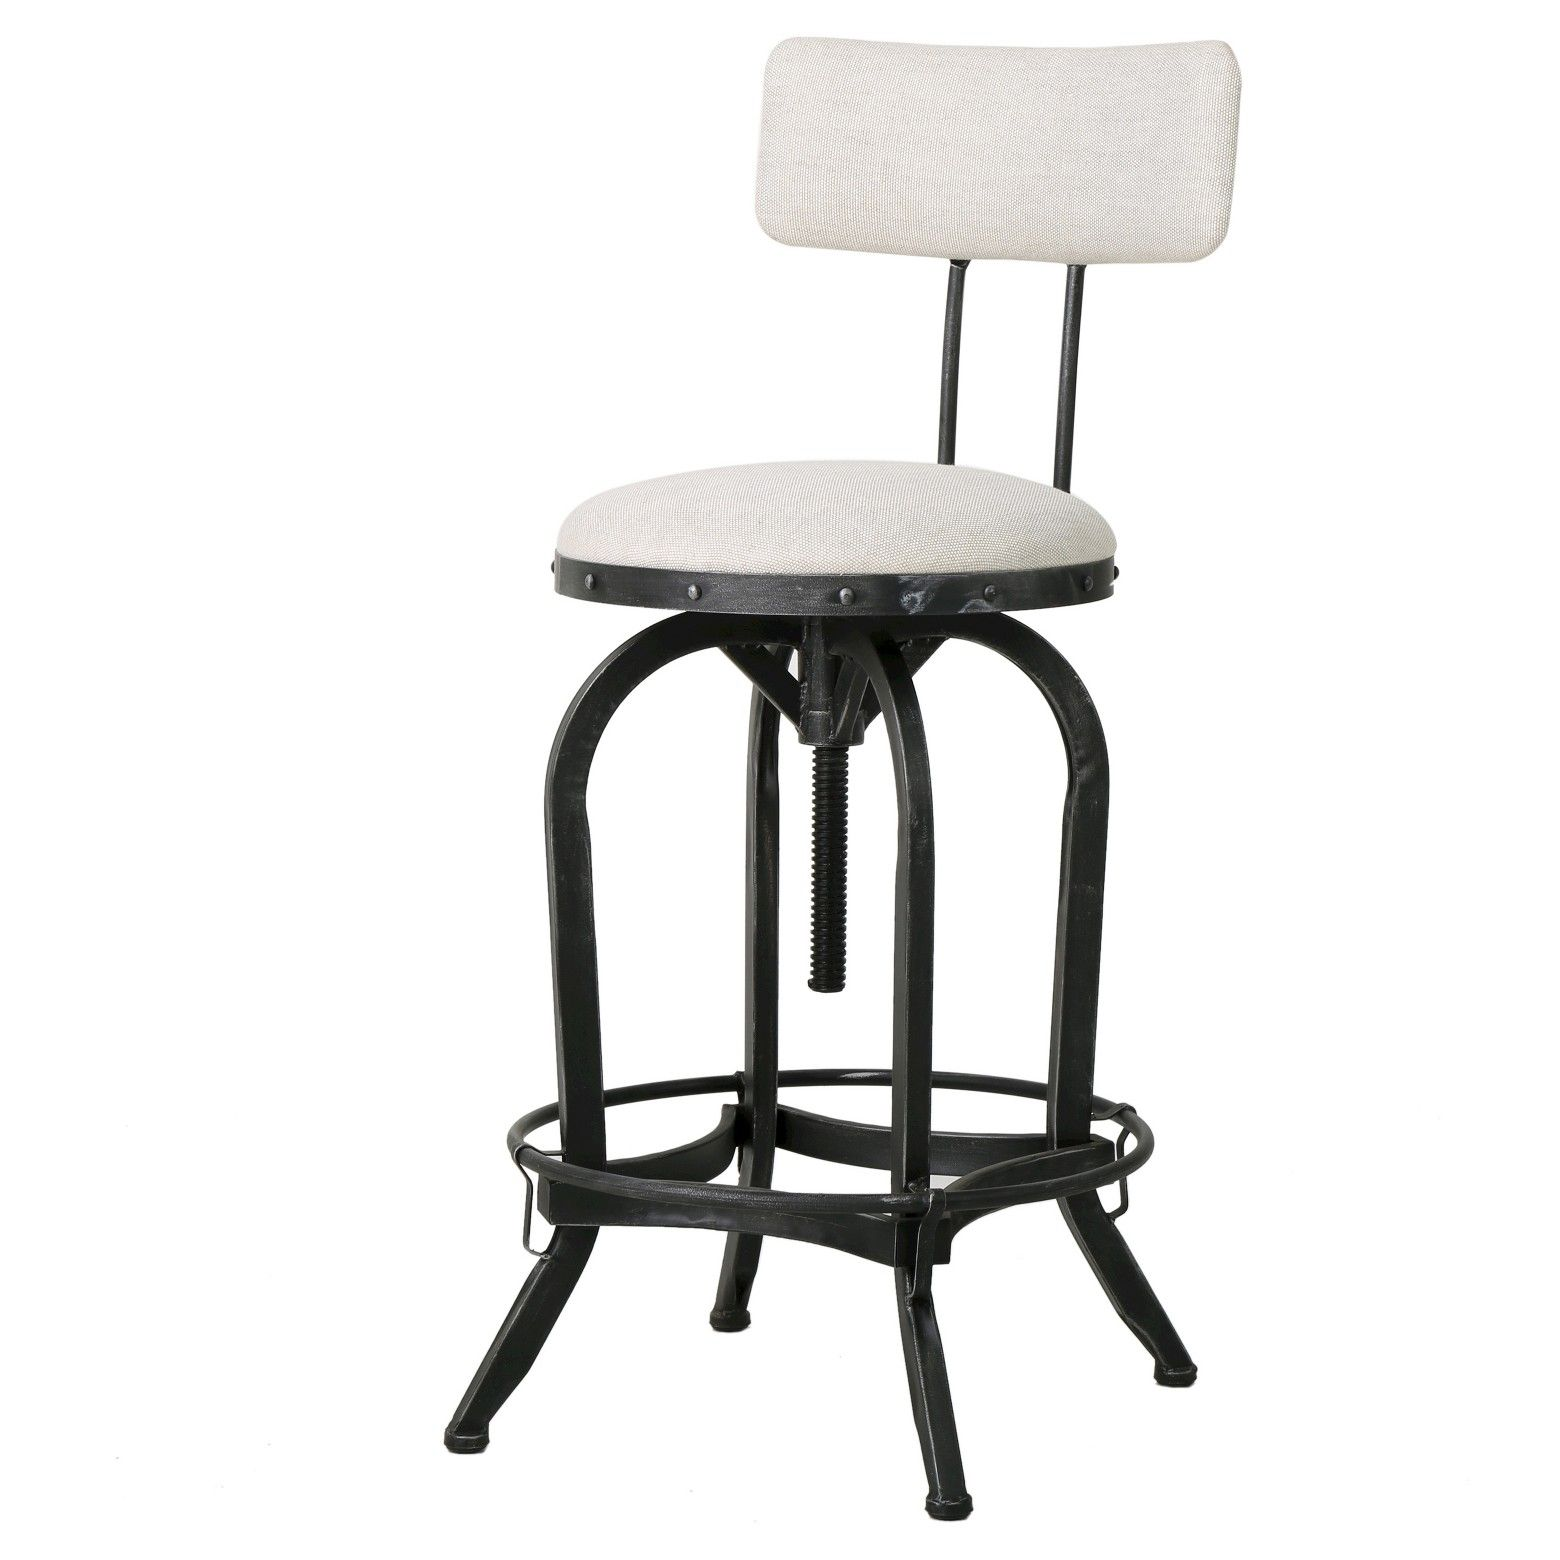 Make Room For One More With This Barstool From Christopher